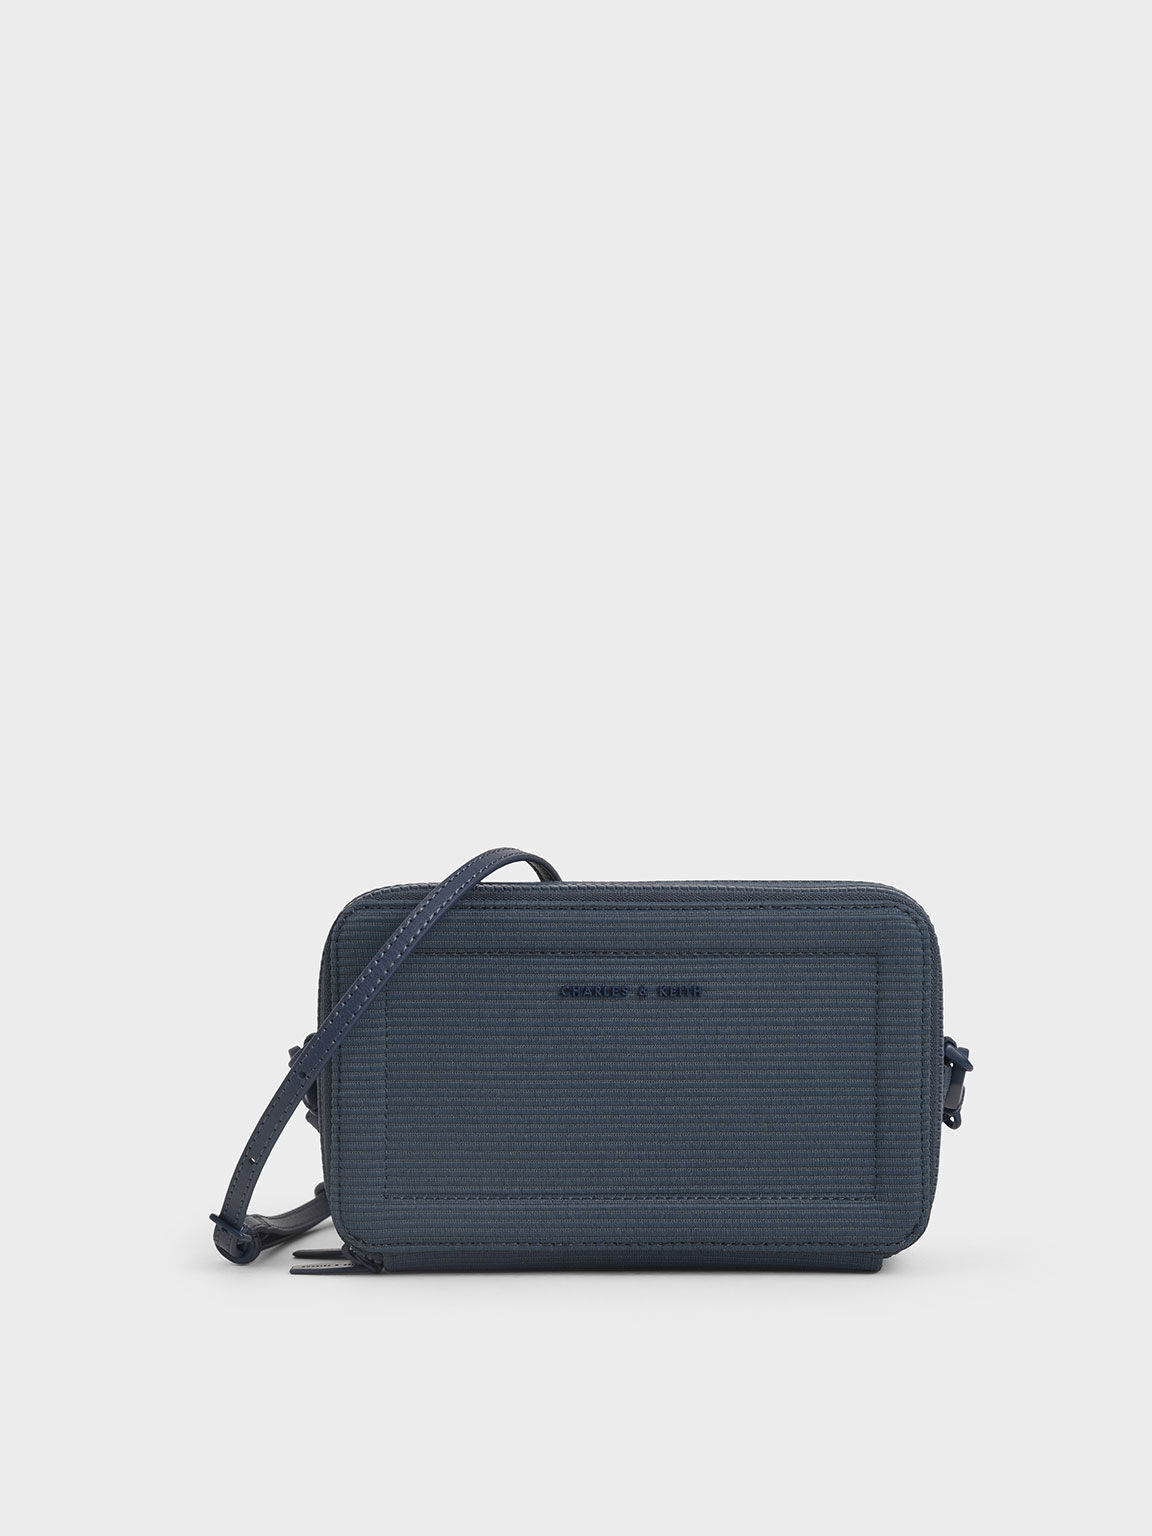 Grosgrain Stitch Trim Long Wallet, Blue, hi-res